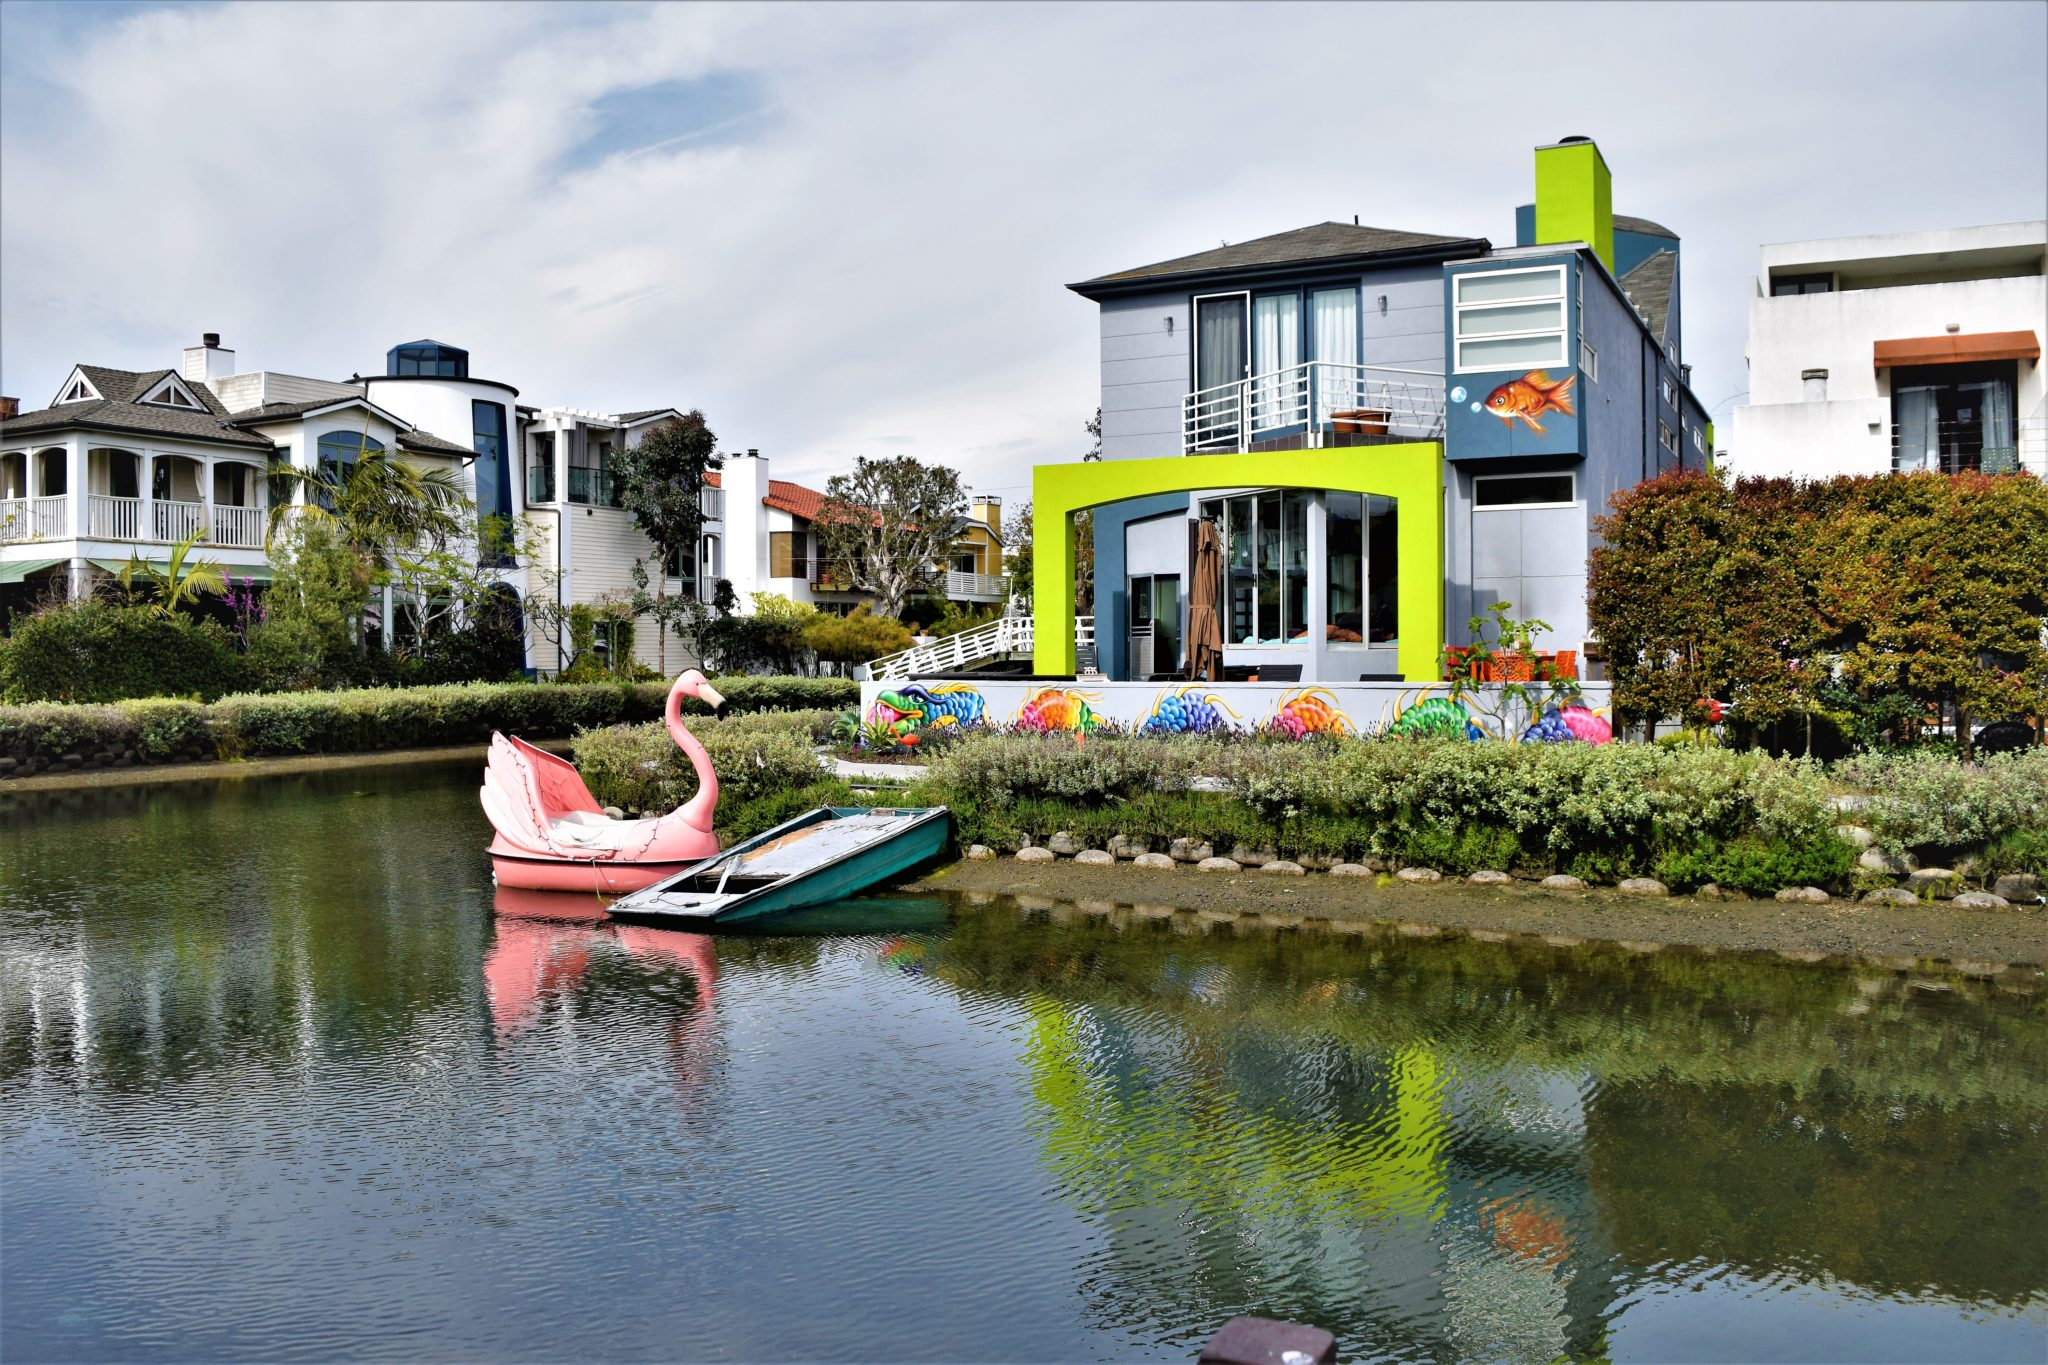 Flamingo boat at the Venice Canals, Los Angeles